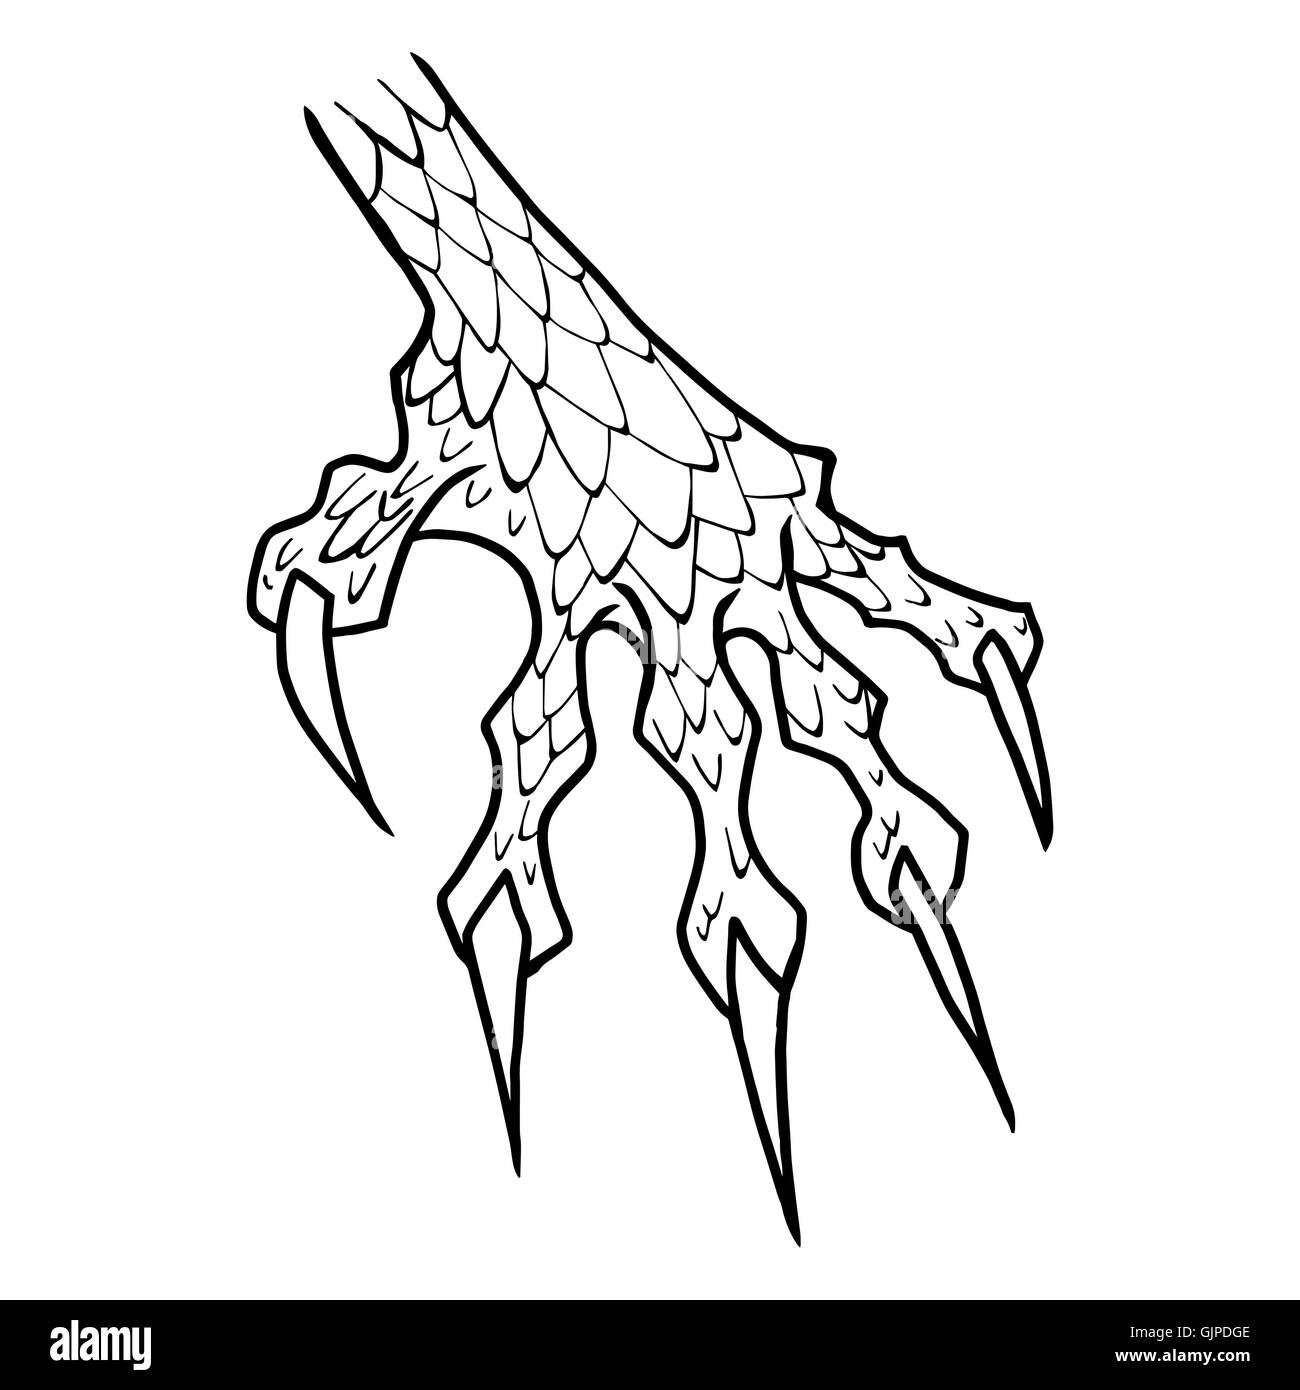 Dragon Or Monster Paw With Claws Wild Tattoo Horror Sticker Stock